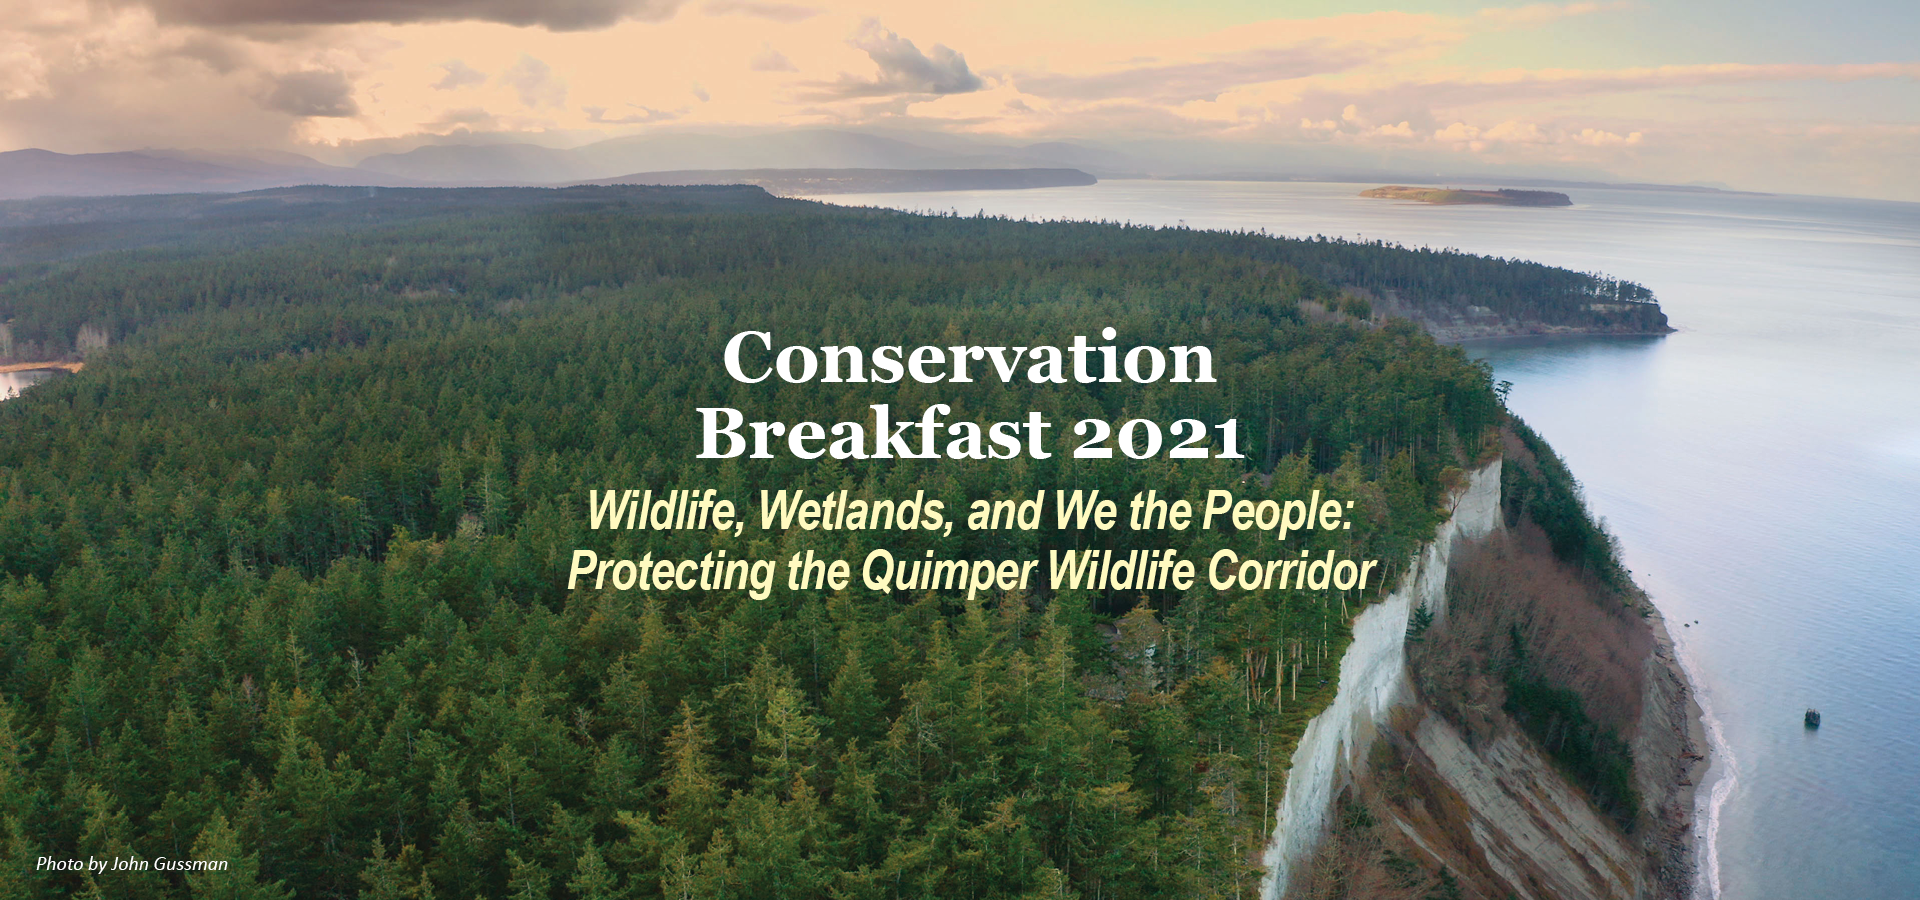 2021 Virtual Conservation Breakfast: Wildlife, Wetlands, and We the People - Protecting the Quimper Wildlife Corridor - Aerial view of the Quimper Wildlife Corridor. Photo by John Gussman.